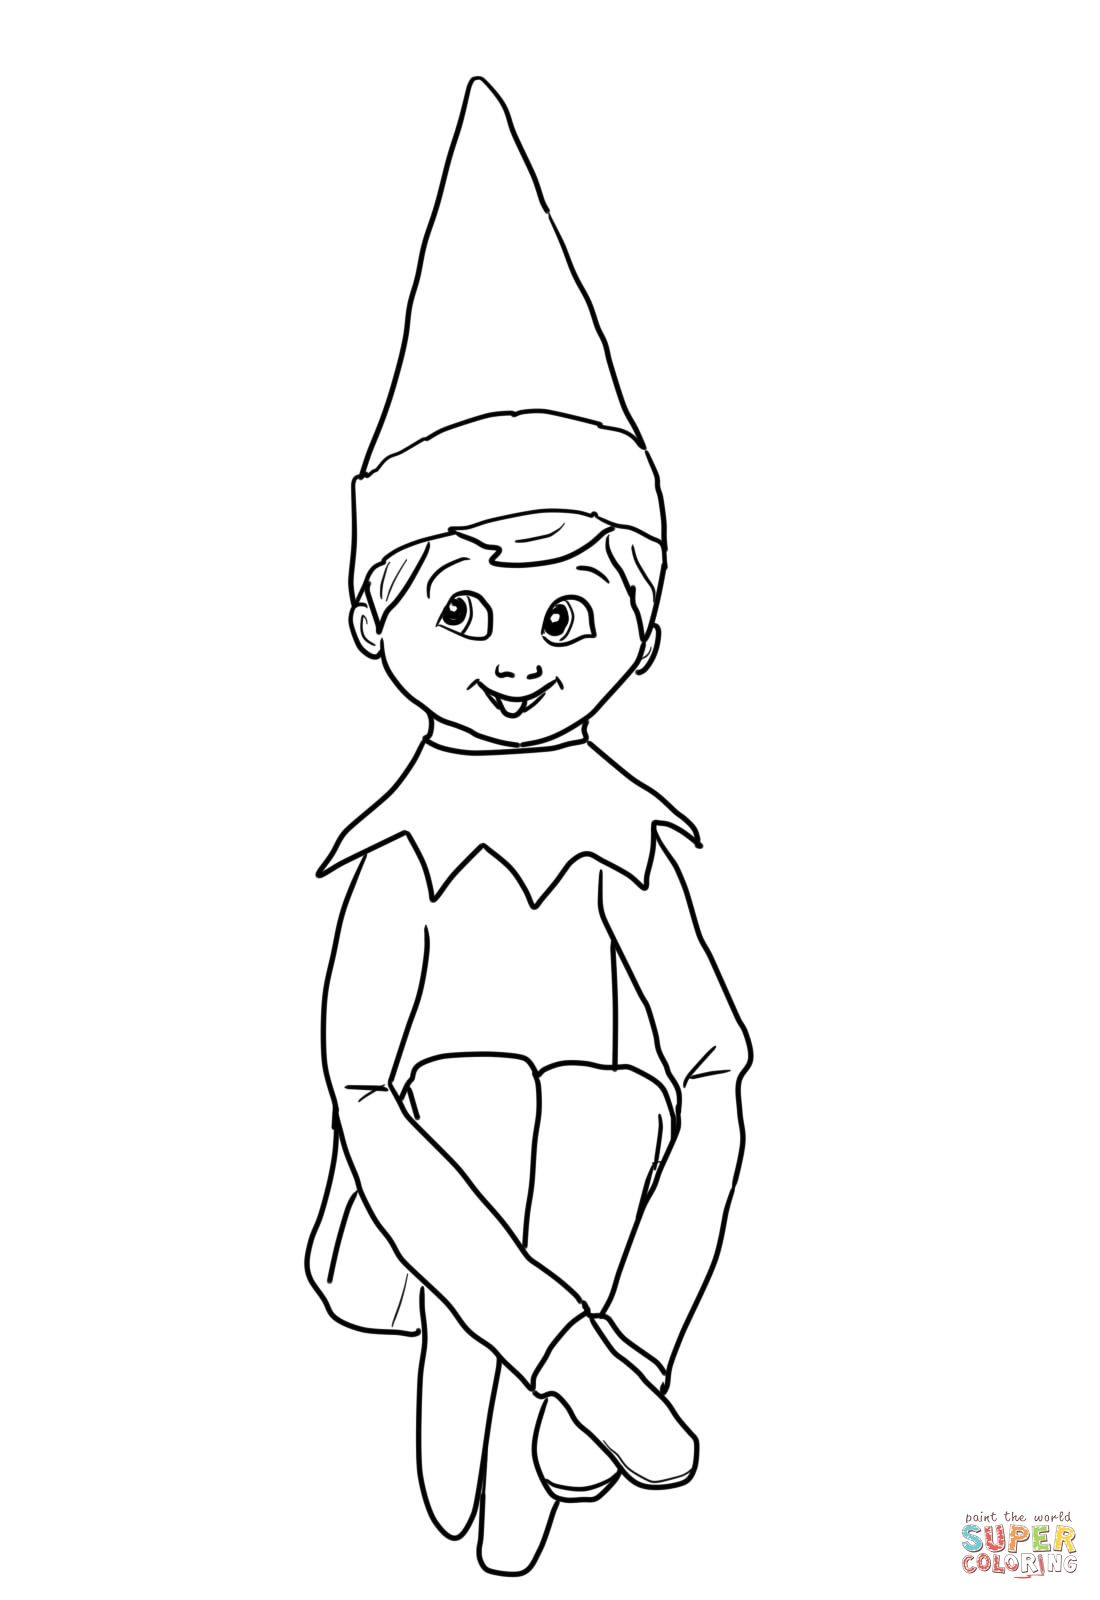 Free Christmas Coloring Pages Elf With Girl On The Shelf You Might Also Be Interested